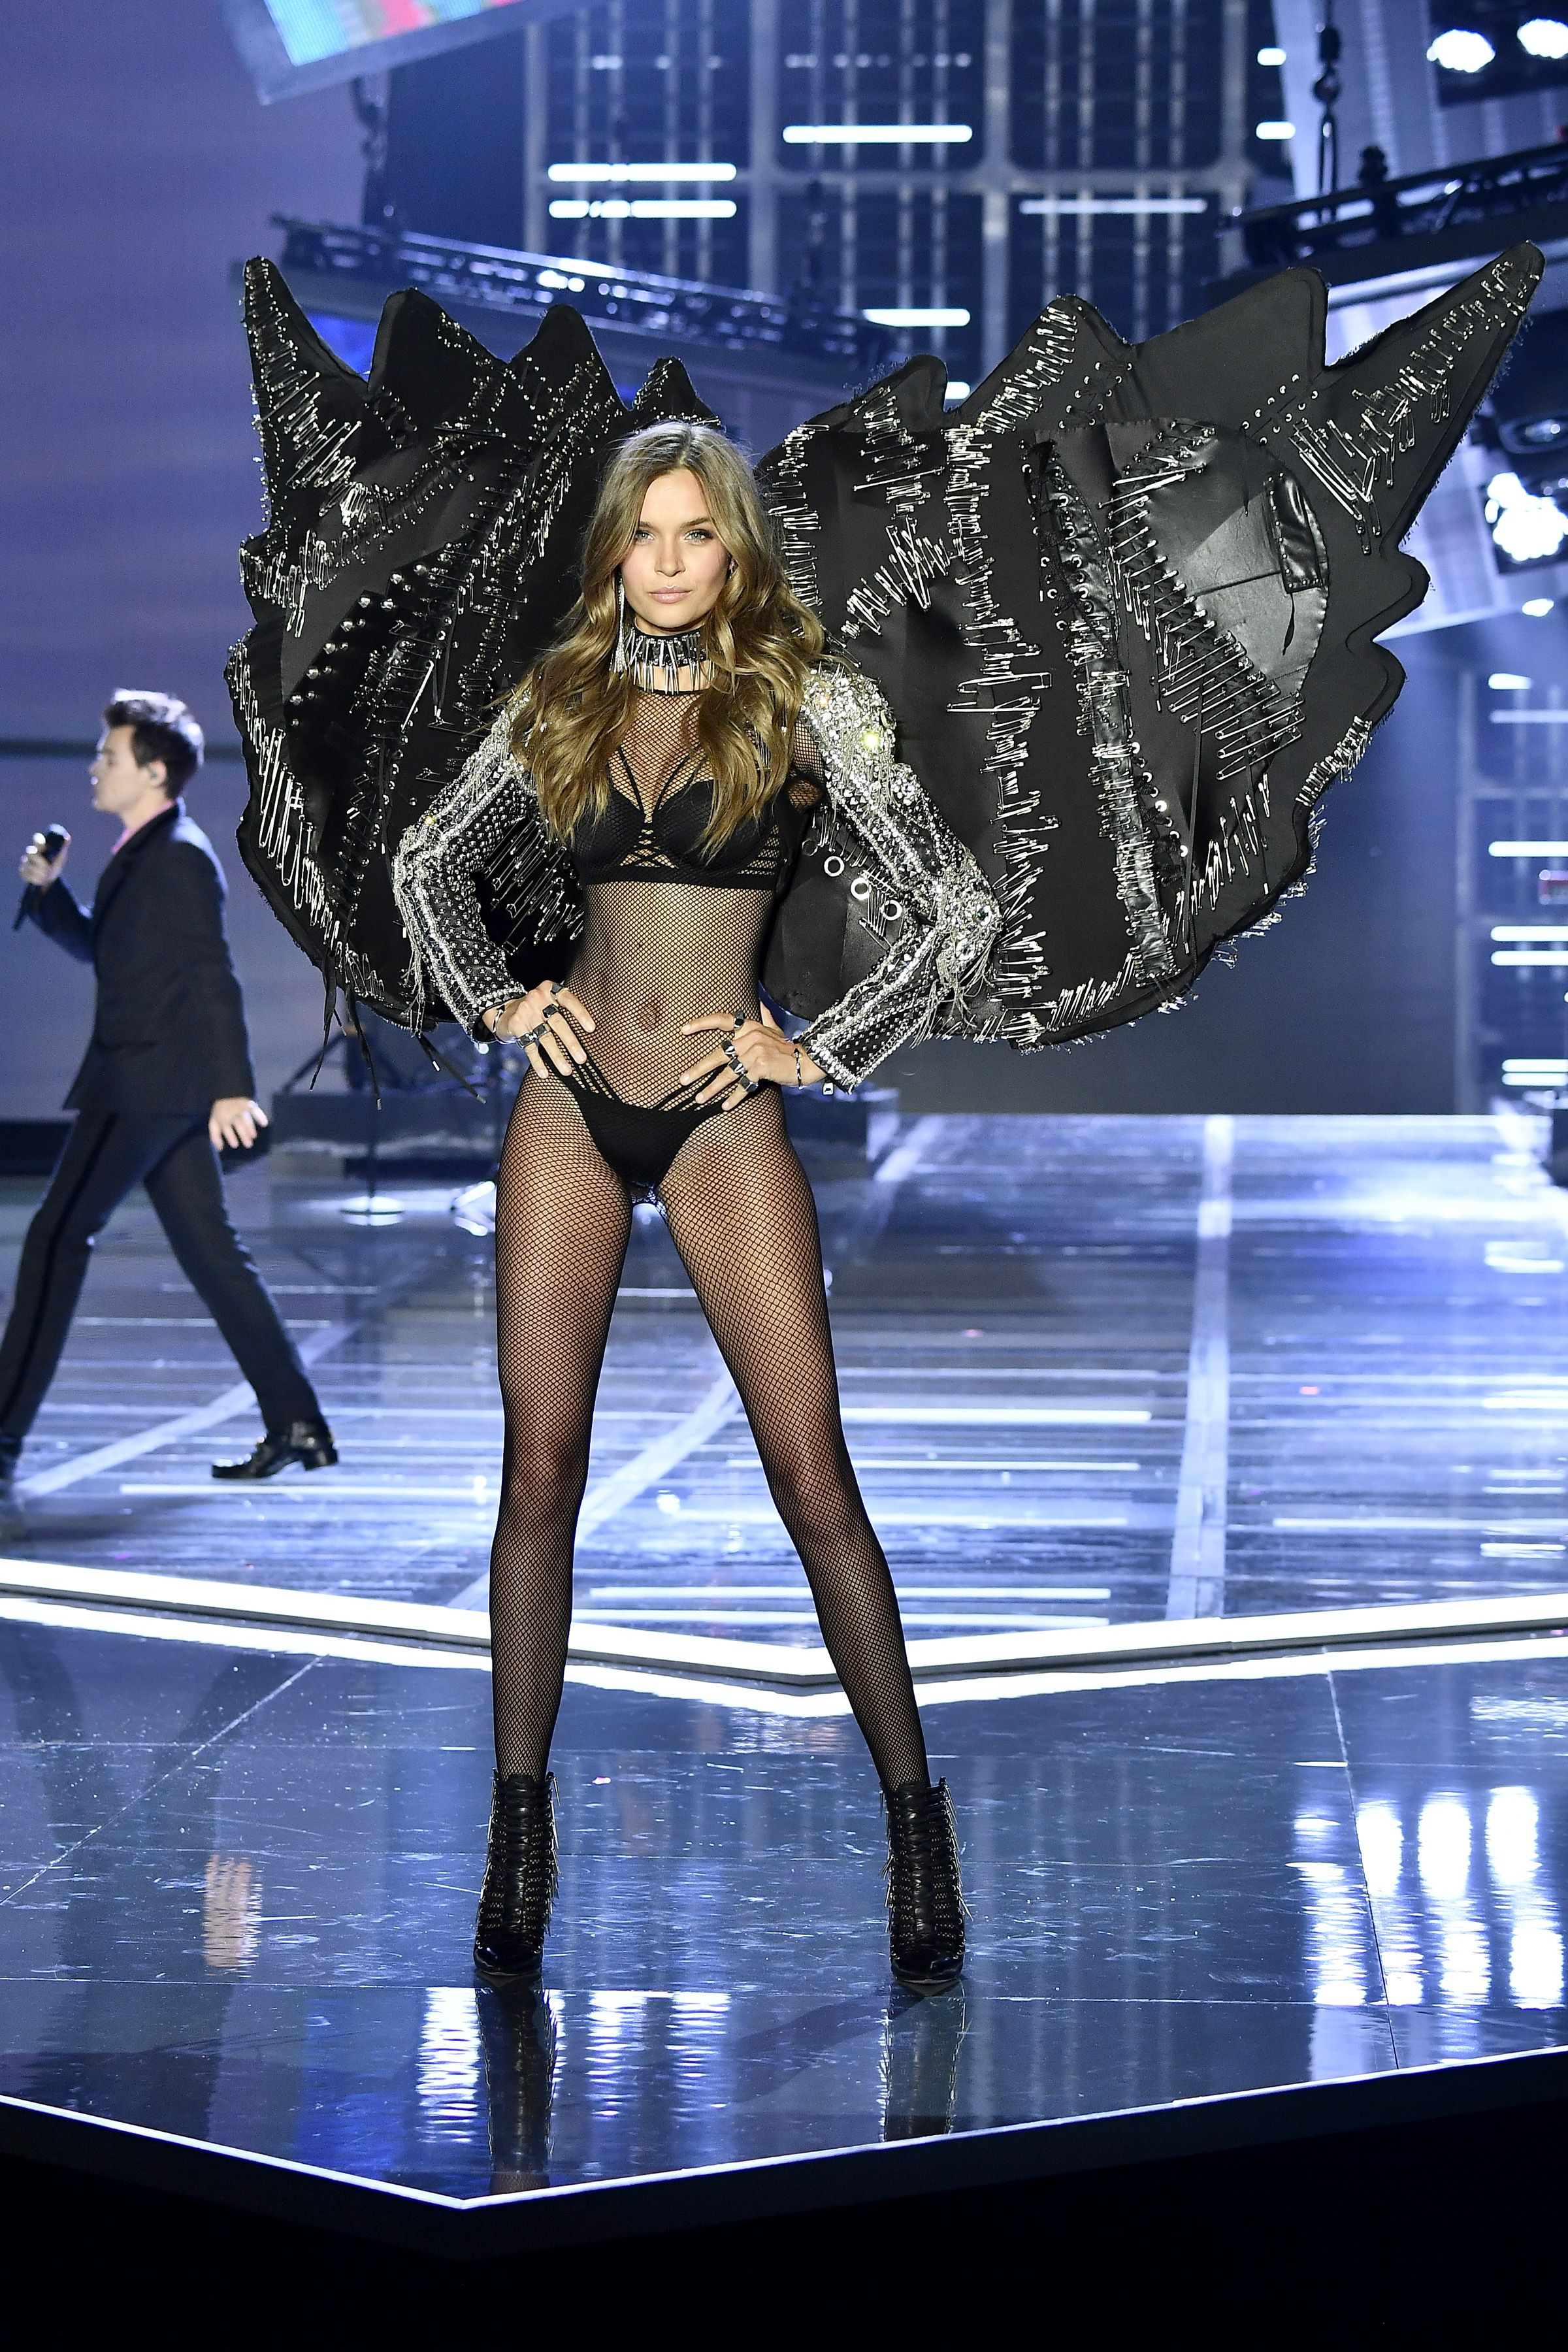 fcb766c2294 Josephine Skriver debuted the VSxBALMAIN collection at the Victoria s Secret  Fashion Show in Shanghai.